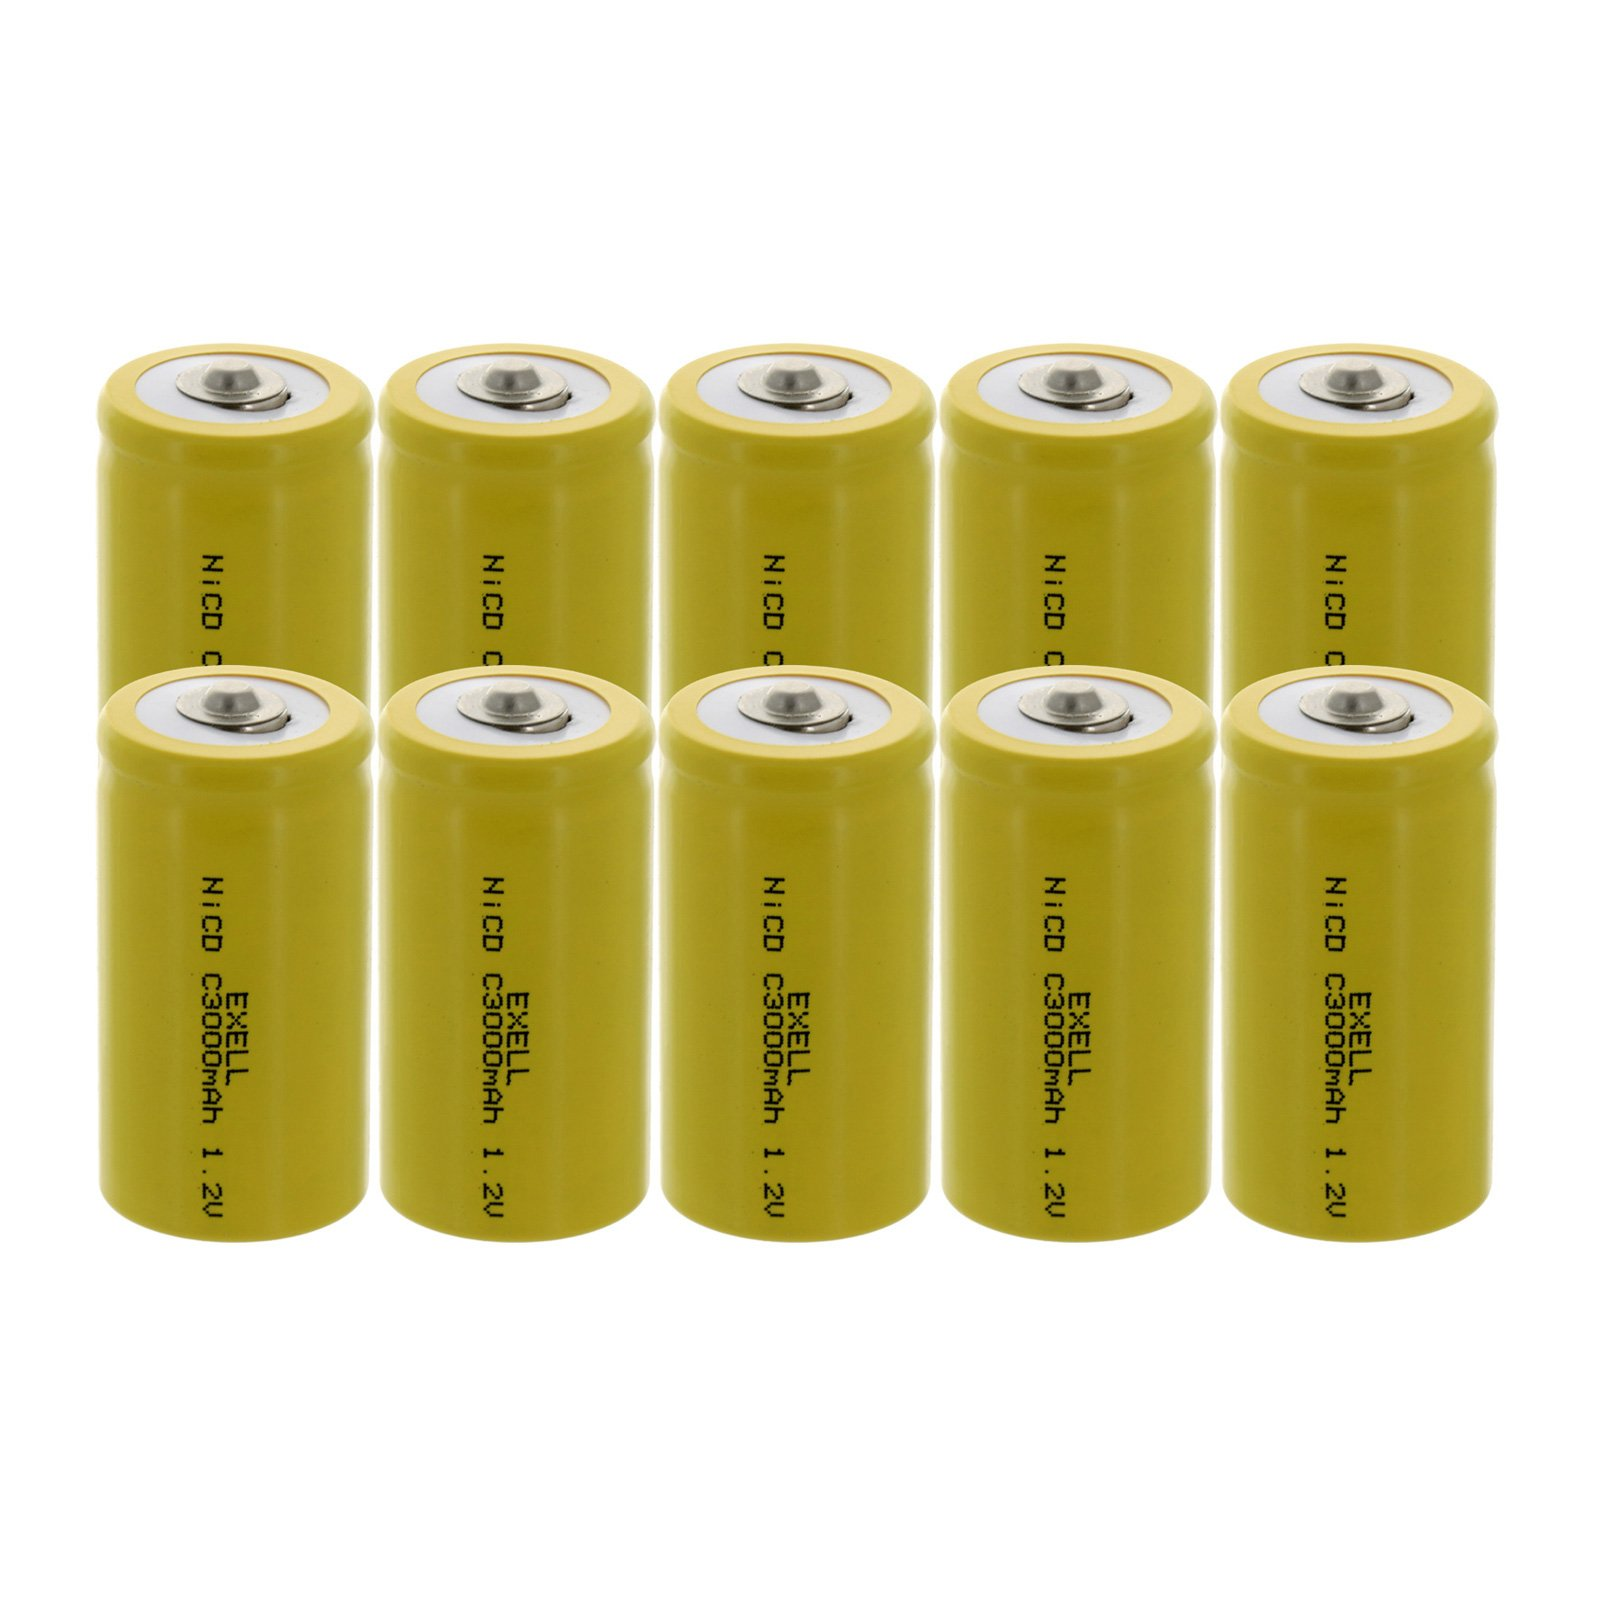 10x Exell C Size 1.2V 3000mAh NiCD Button Top Rechargeable Batteries for medical instruments/equipment, electric razors, toothbrushes, radio controlled devices, electric tools by Exell Battery